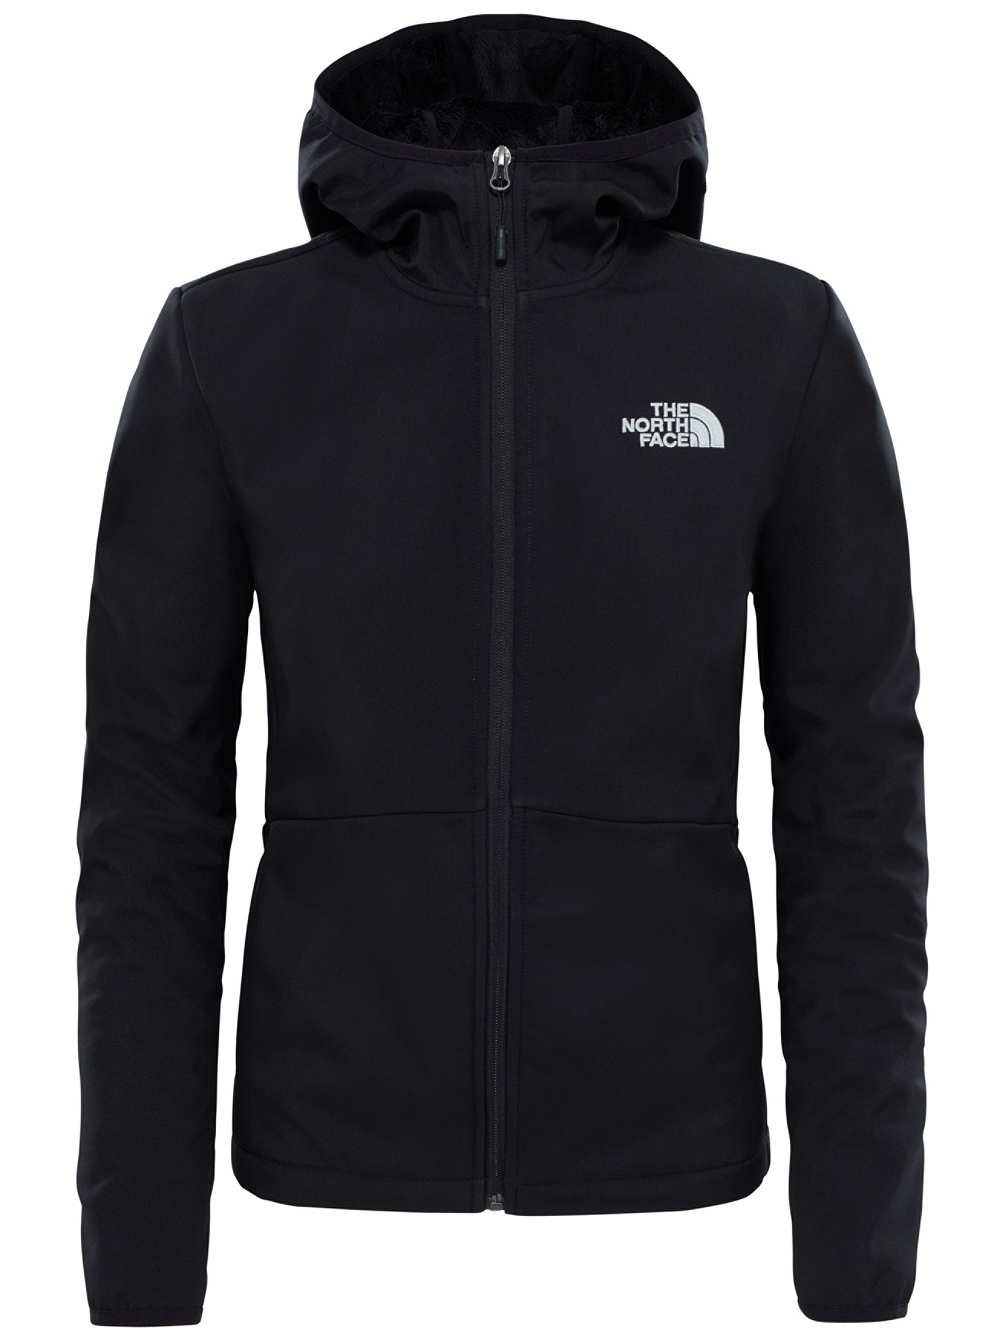 The North Face T933go Chaqueta Highloft Soft Shell Tanken, Mujer: Amazon.es: Deportes y aire libre